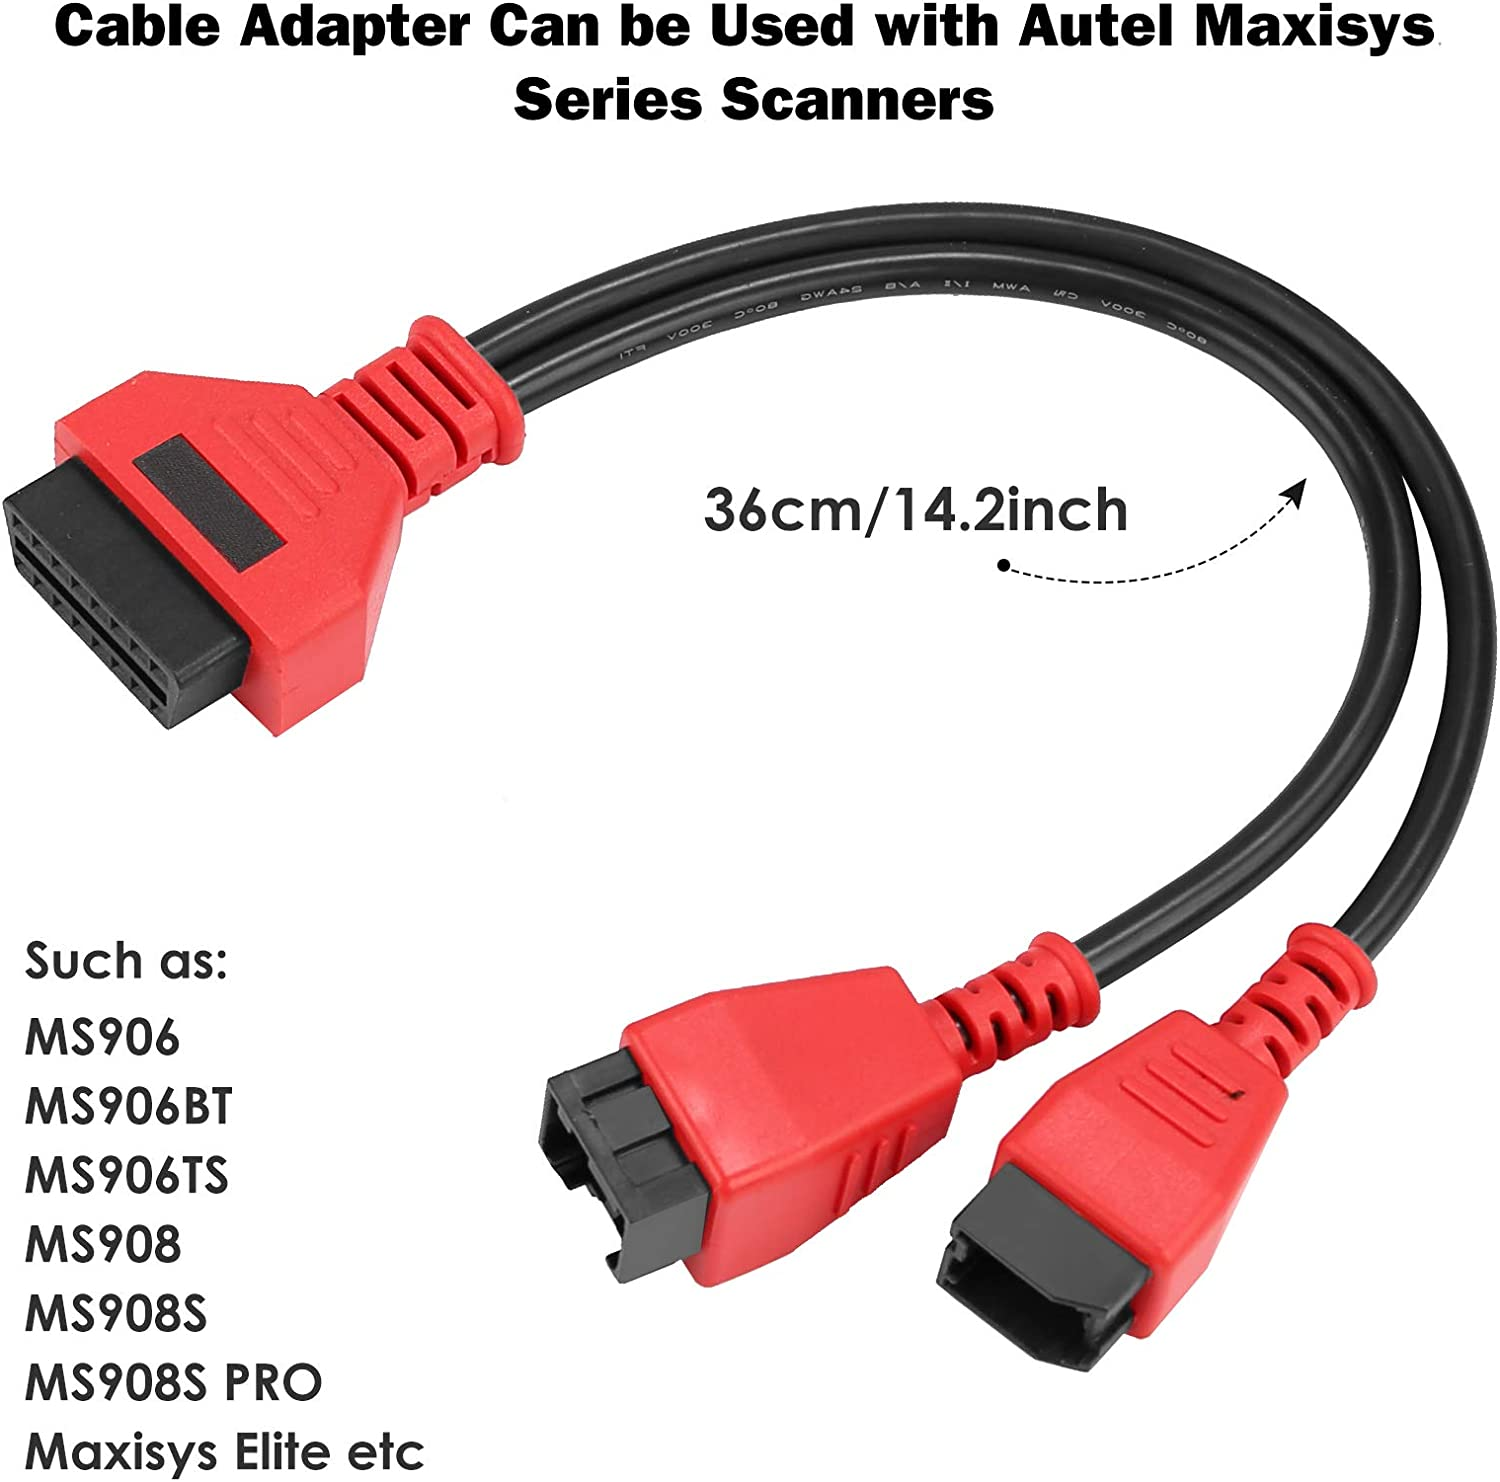 TTXSPP Cable Adaptor for Chrysler 12+8 Programming Cable Connector for Autel DS808 Maxisys Main Test Cable for Autel DS808 Maxisys MS905 MS906 MS906BT MS906S MS908 MS908S Pro